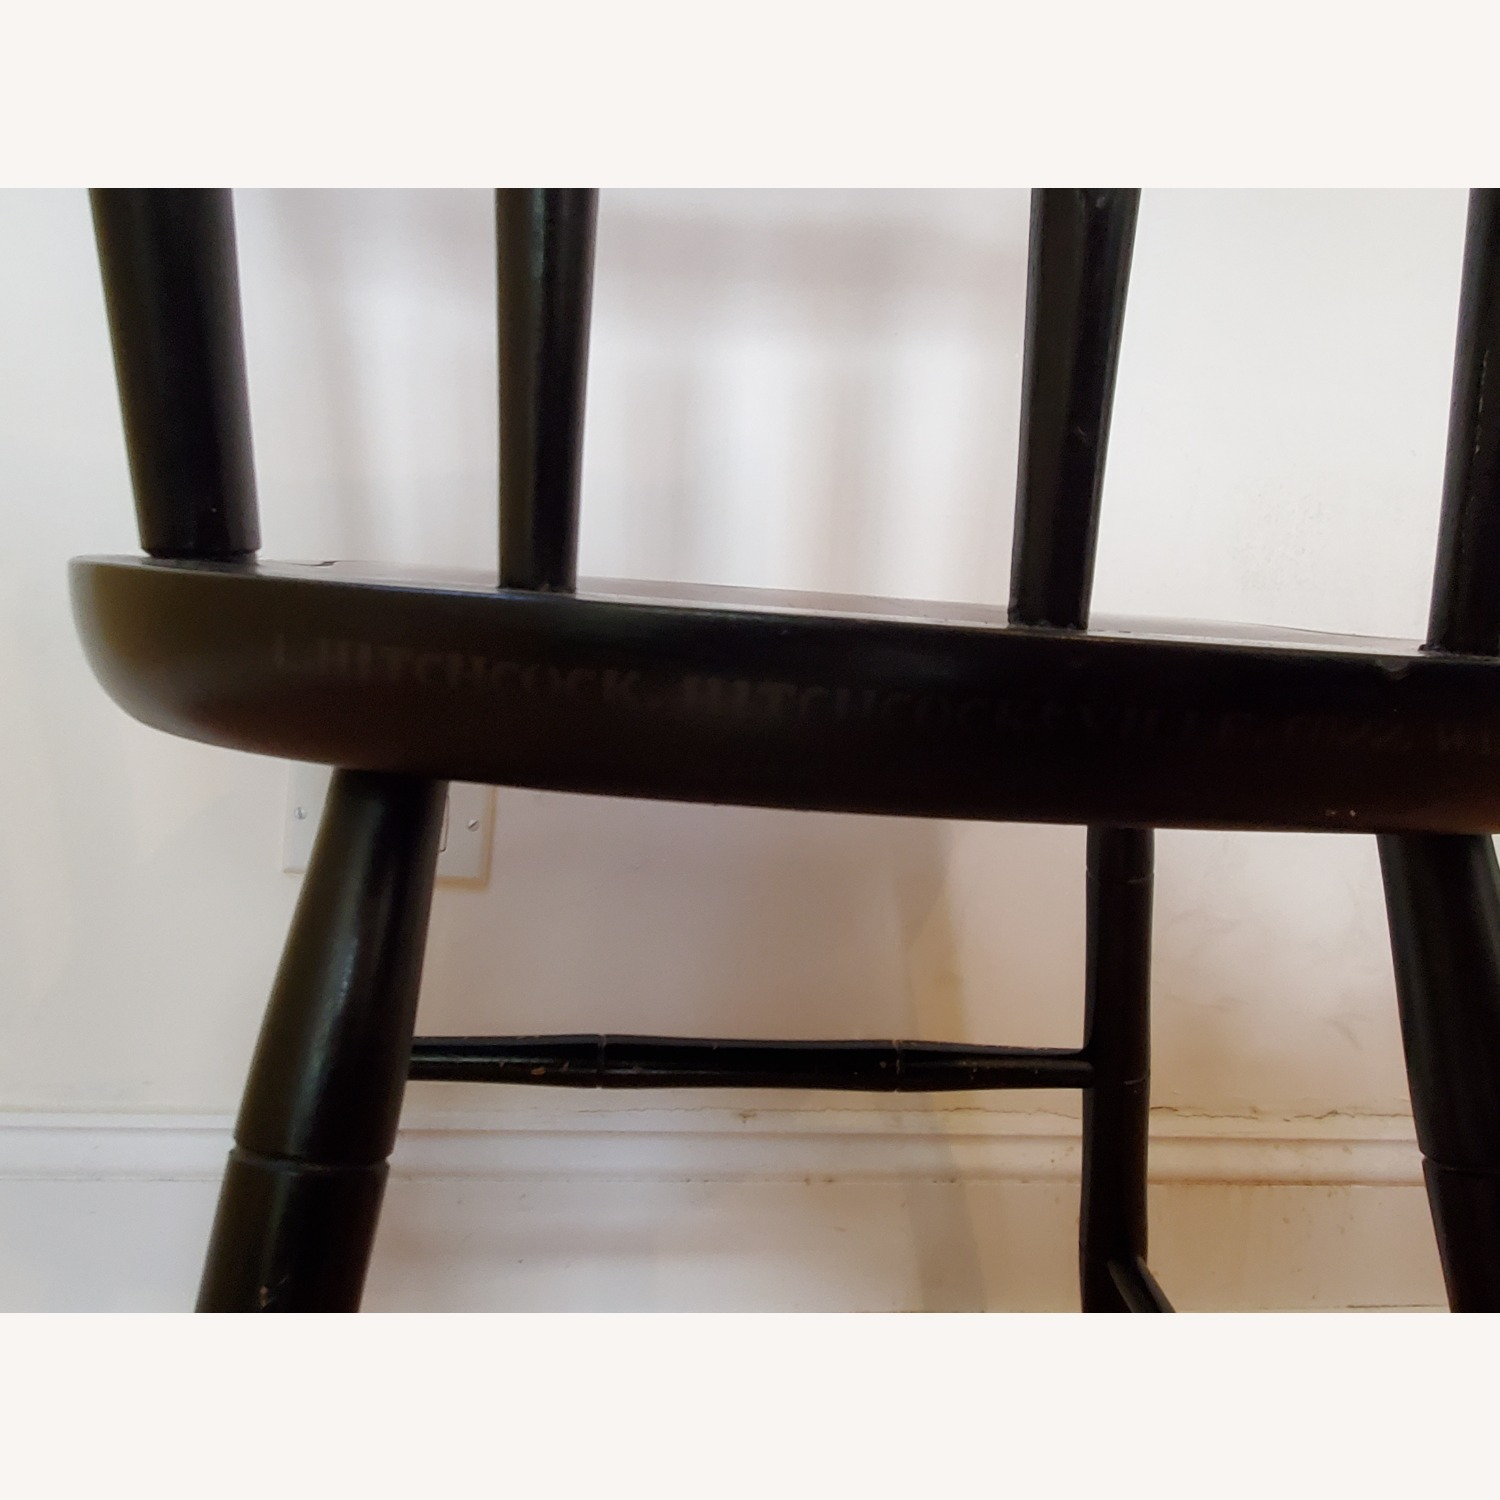 Hitchcock Furniture Signed Black Farmhouse Chair - image-9